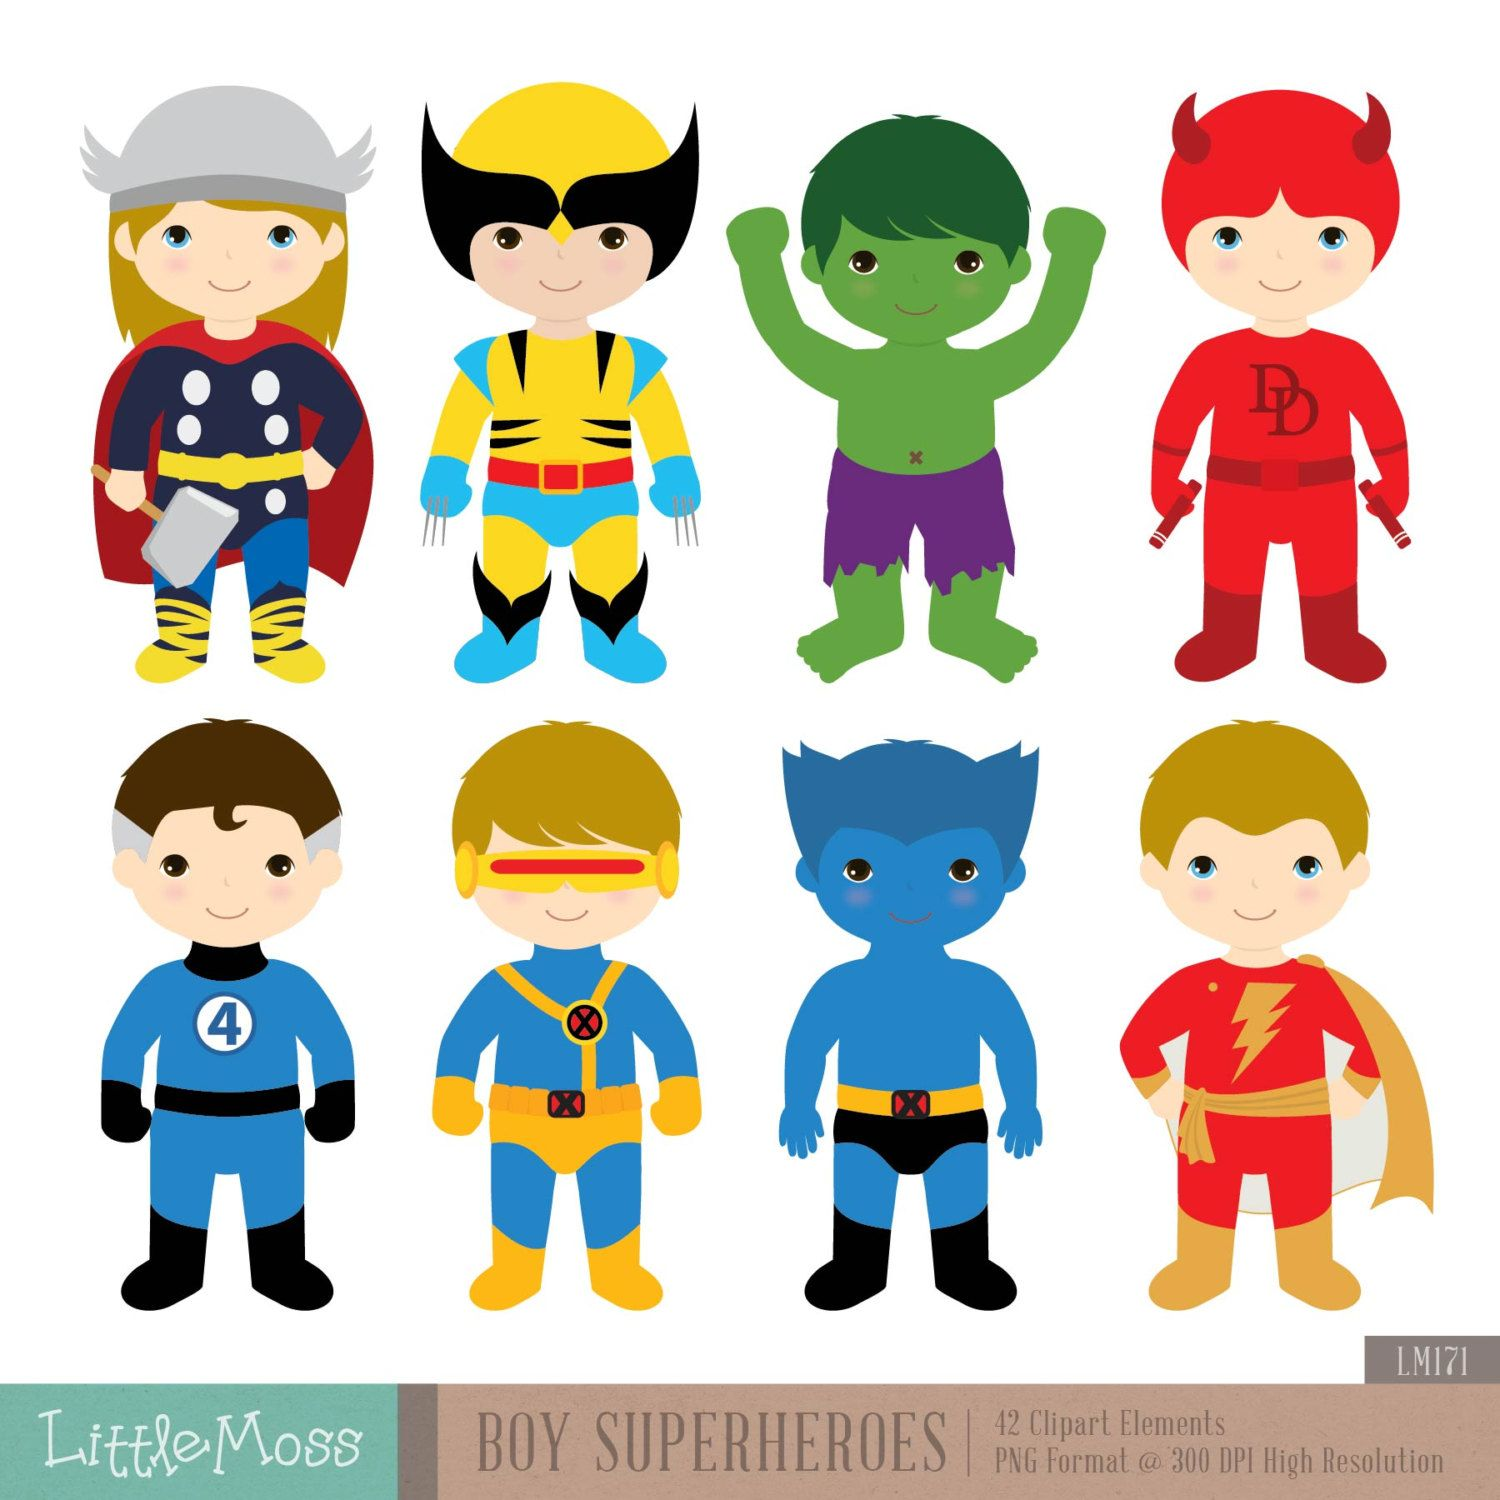 Superhero Art For Little Boys